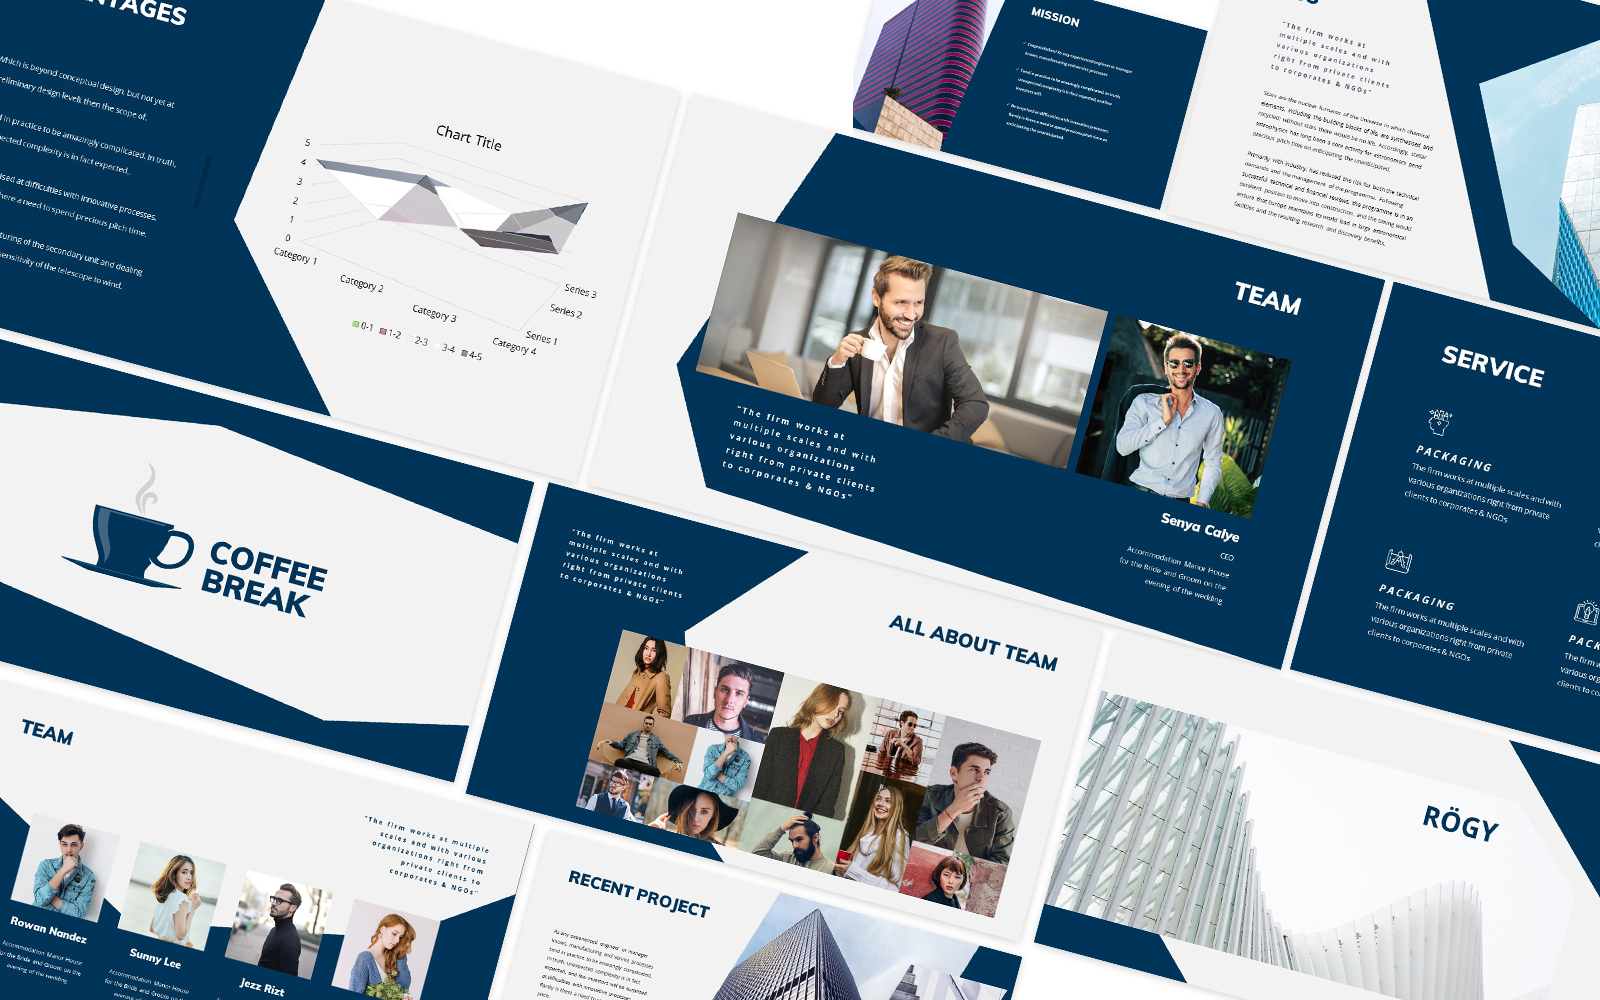 Rogy Business Powerpoint Template